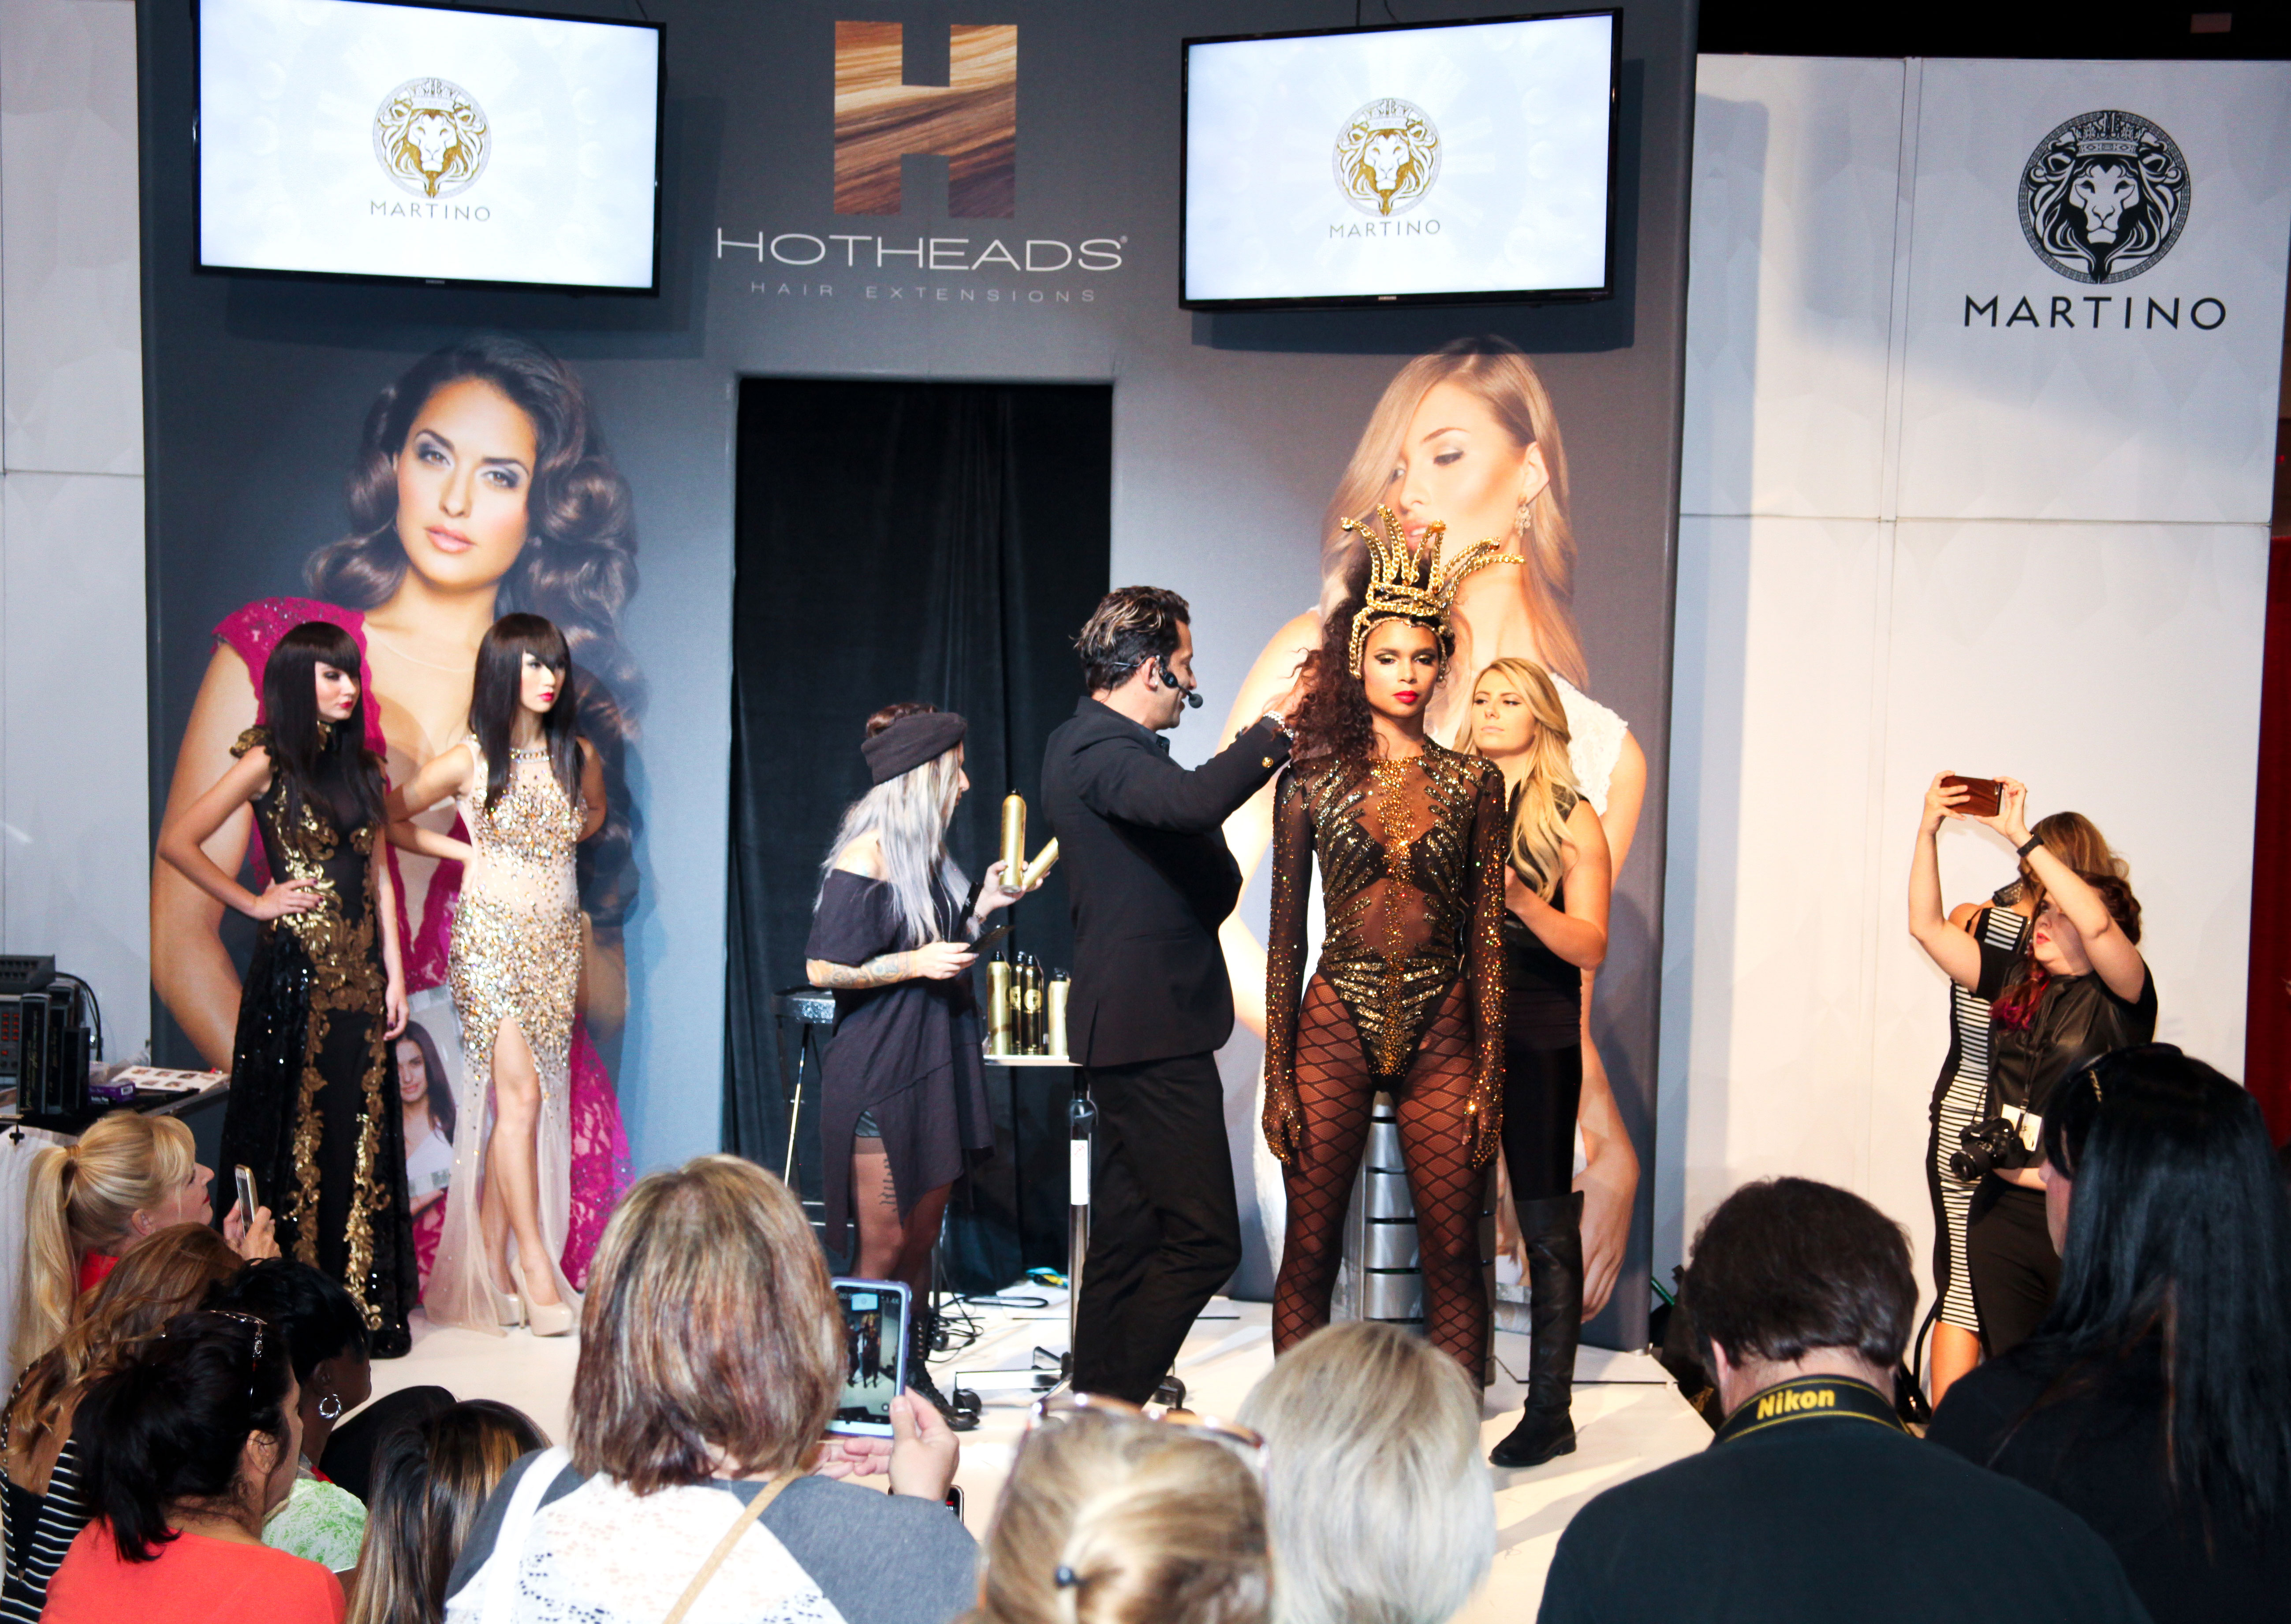 Hotheads Hair Extensions at last year's show.  (photo credit: Premiere Orlando) Premiere Orlando